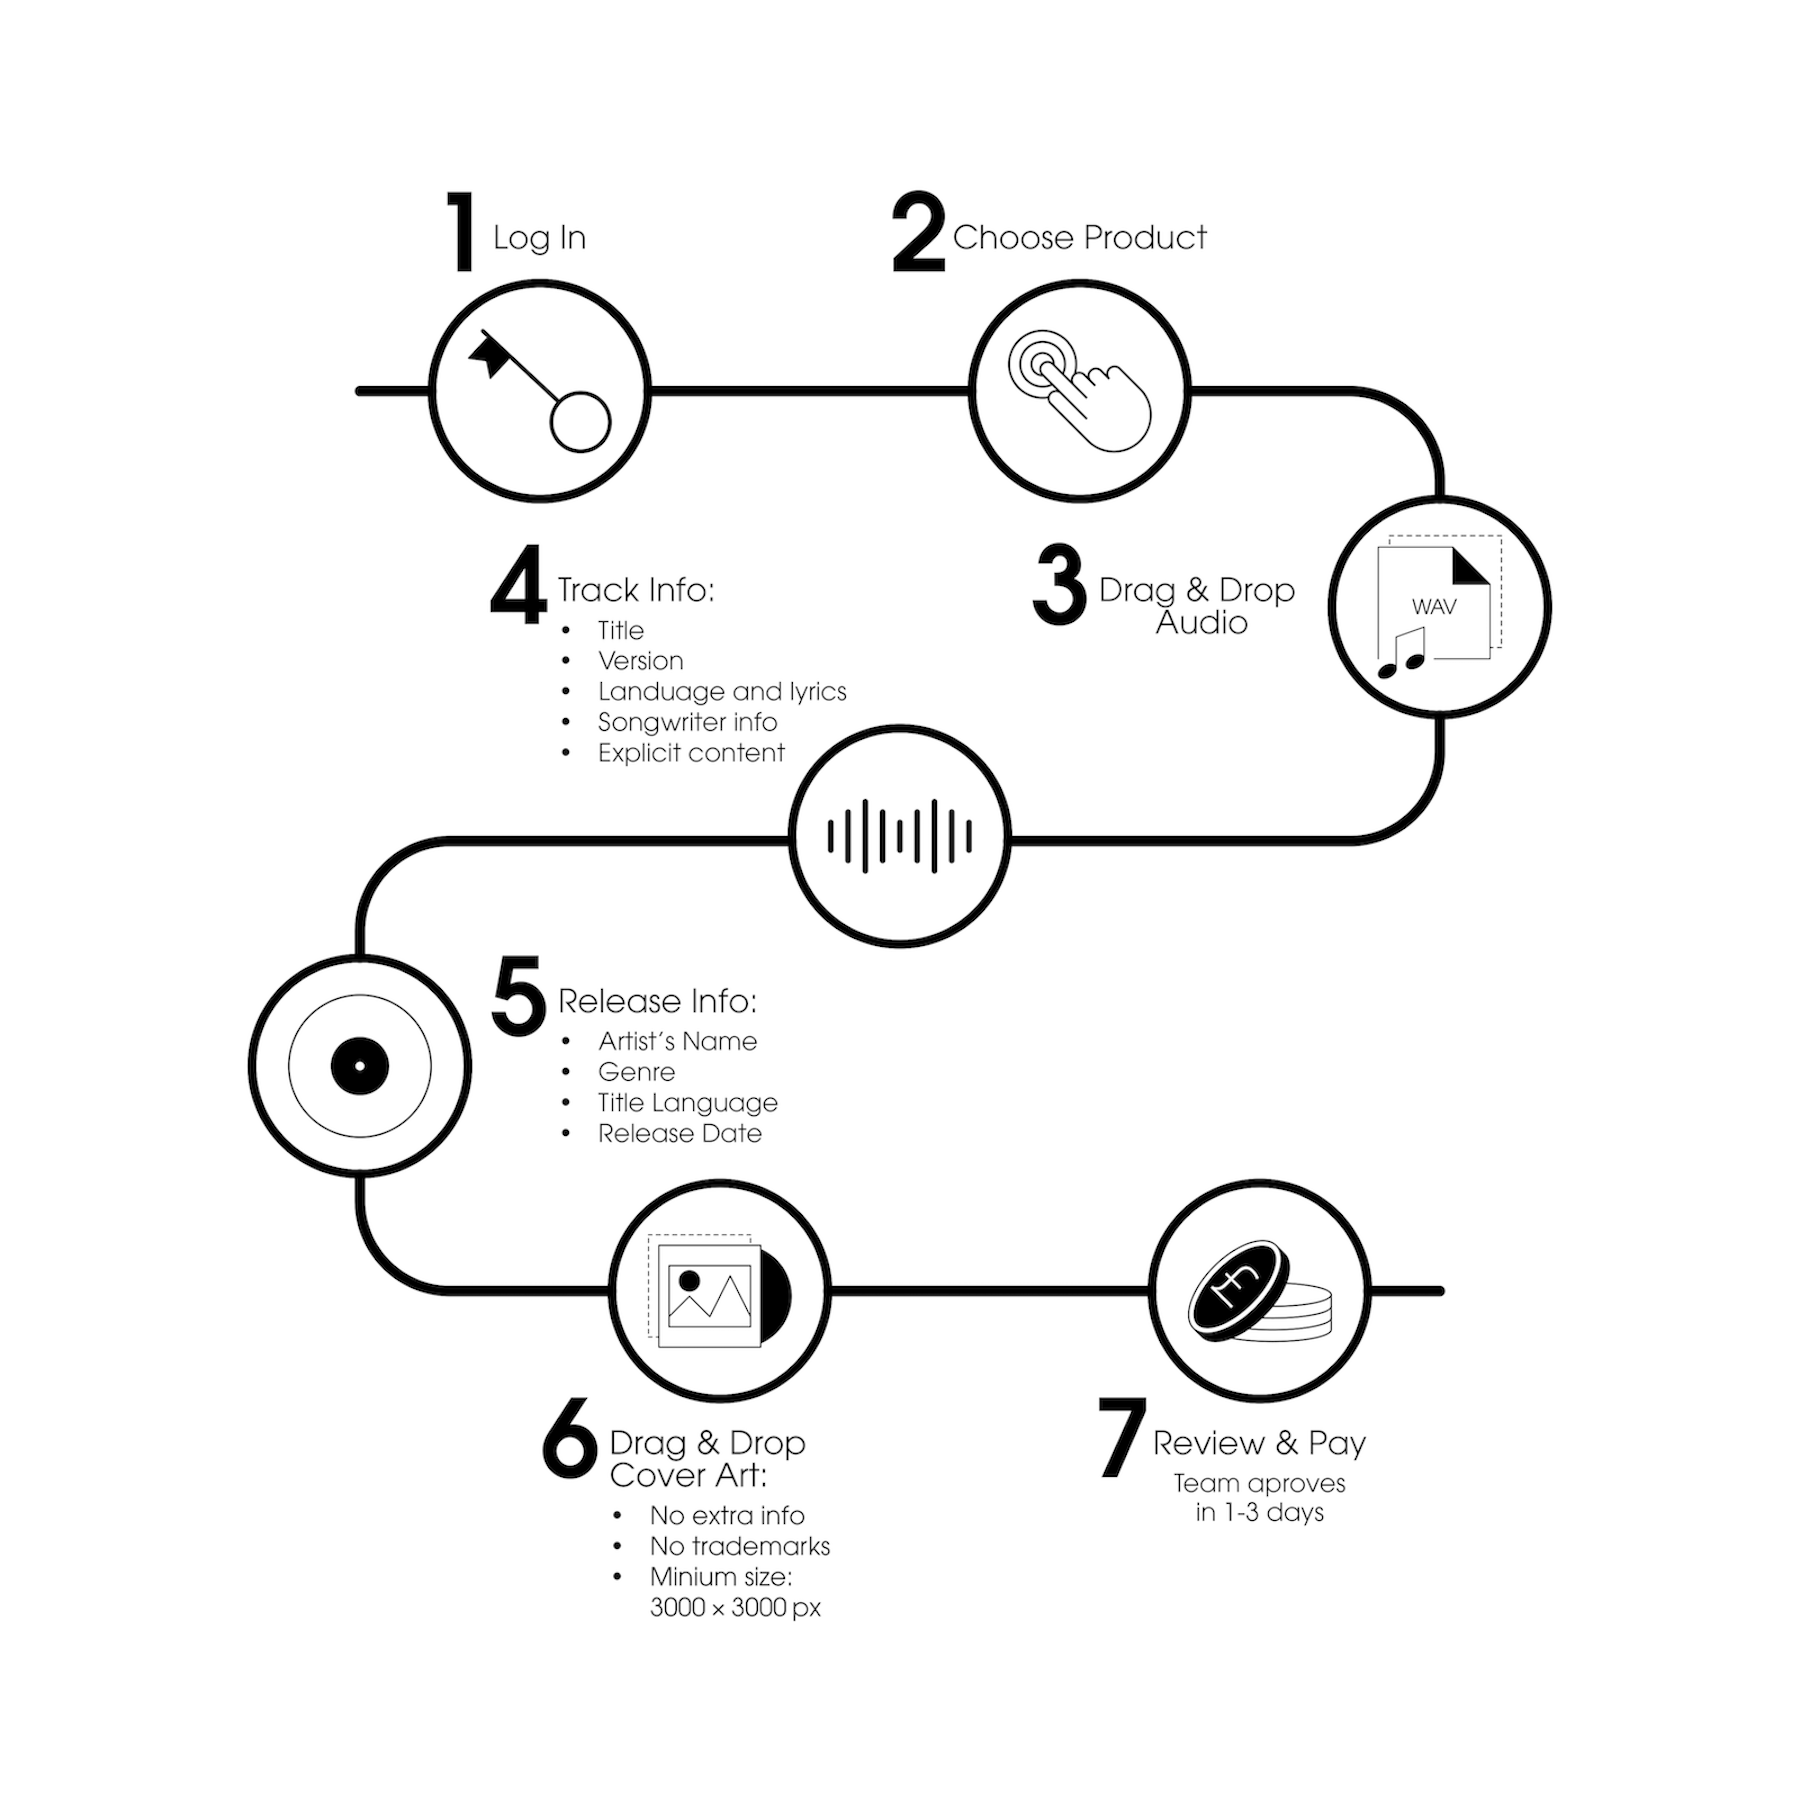 Spinnup_Release_Flow_Info.. Png